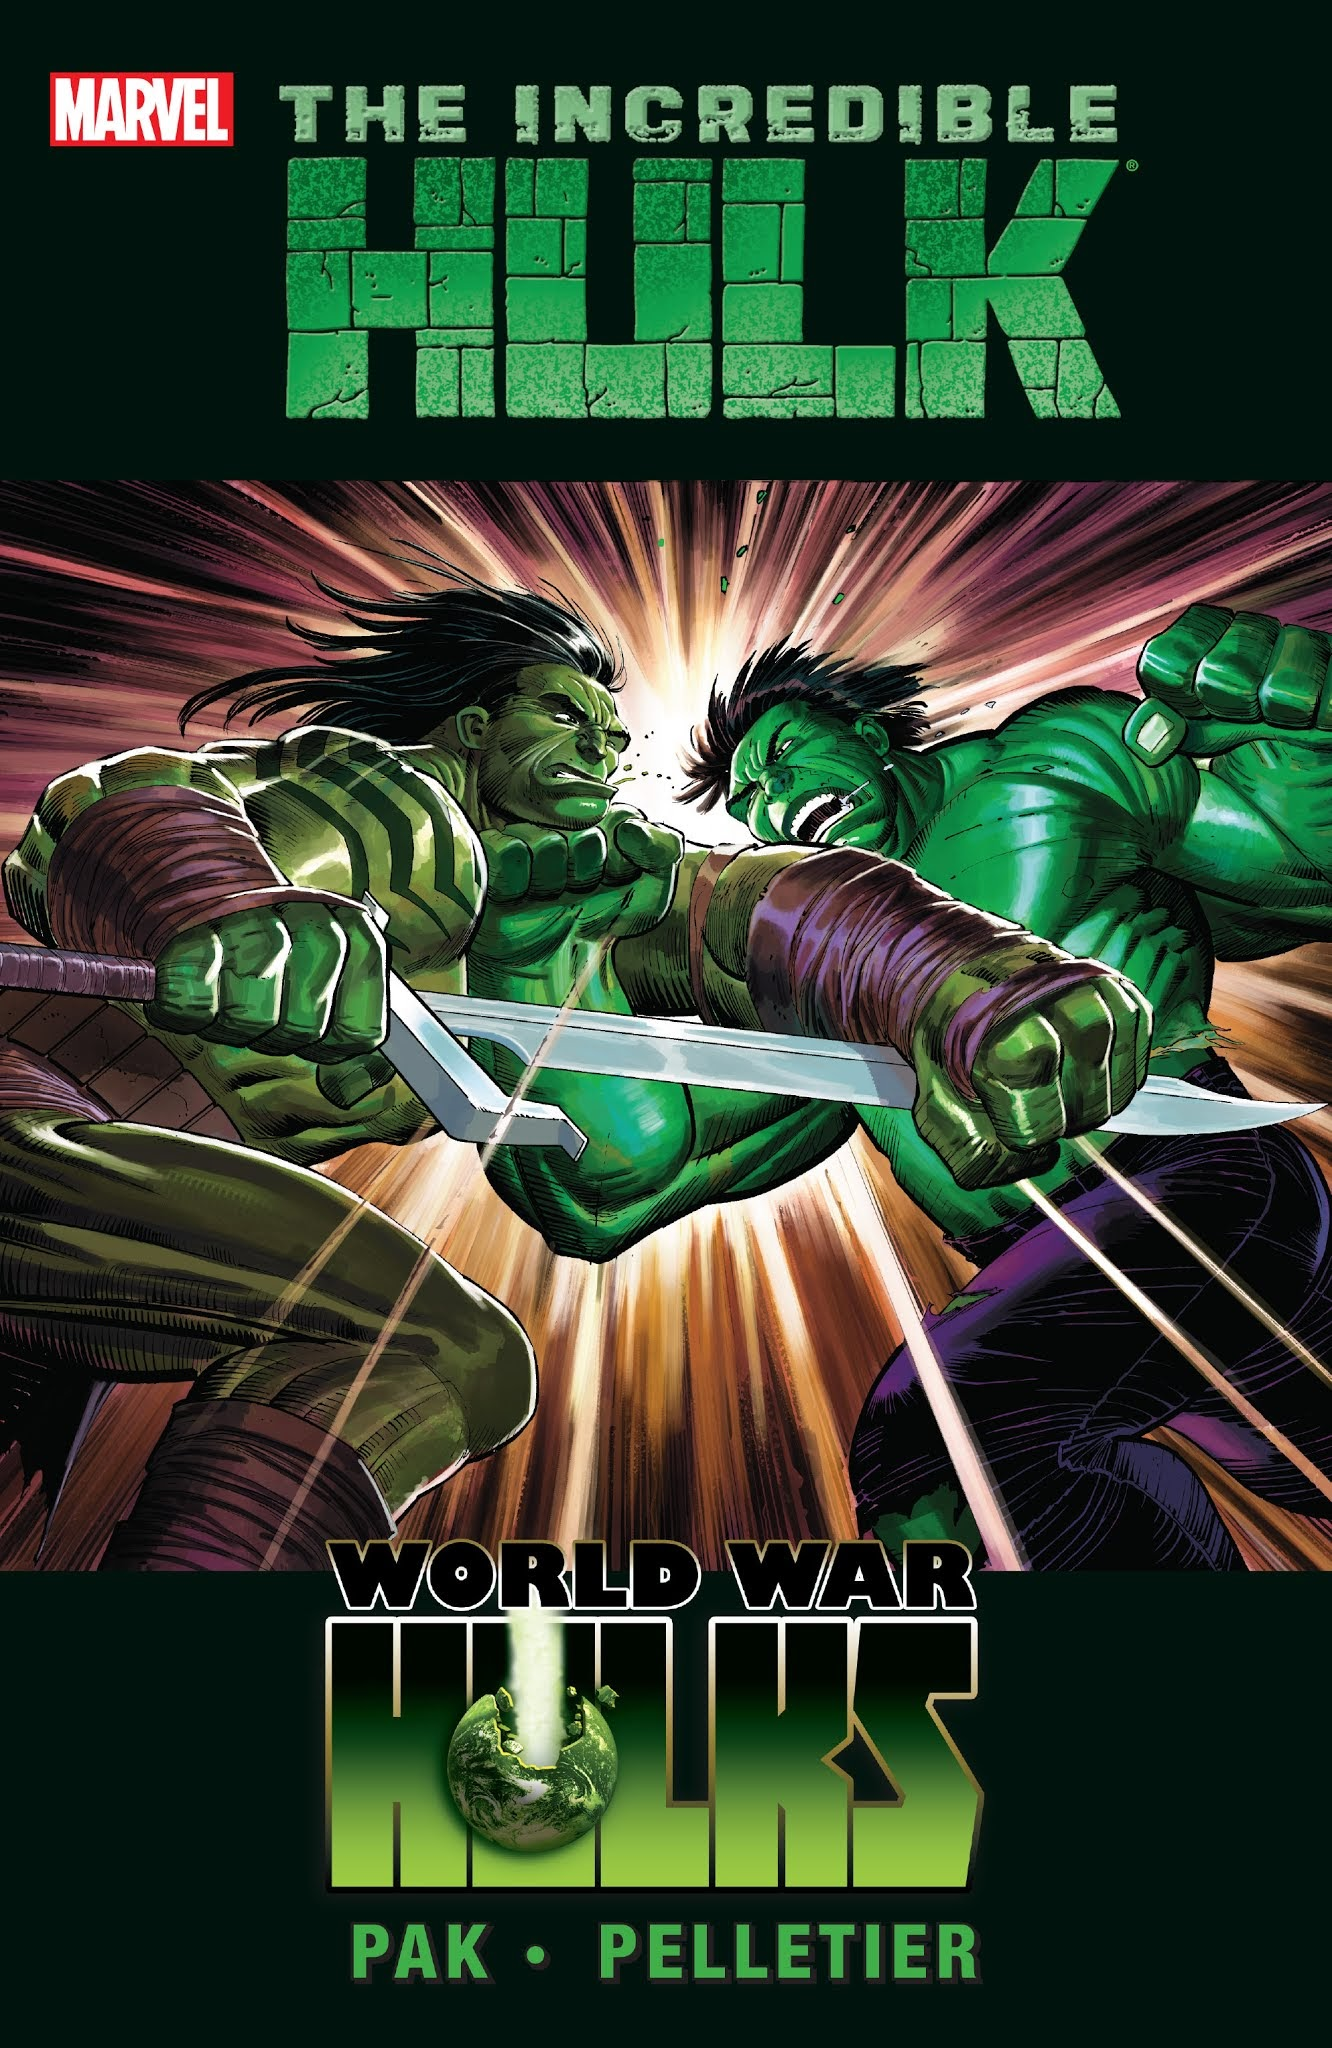 Incredible Hulks: World War Hulks TPB Page 1